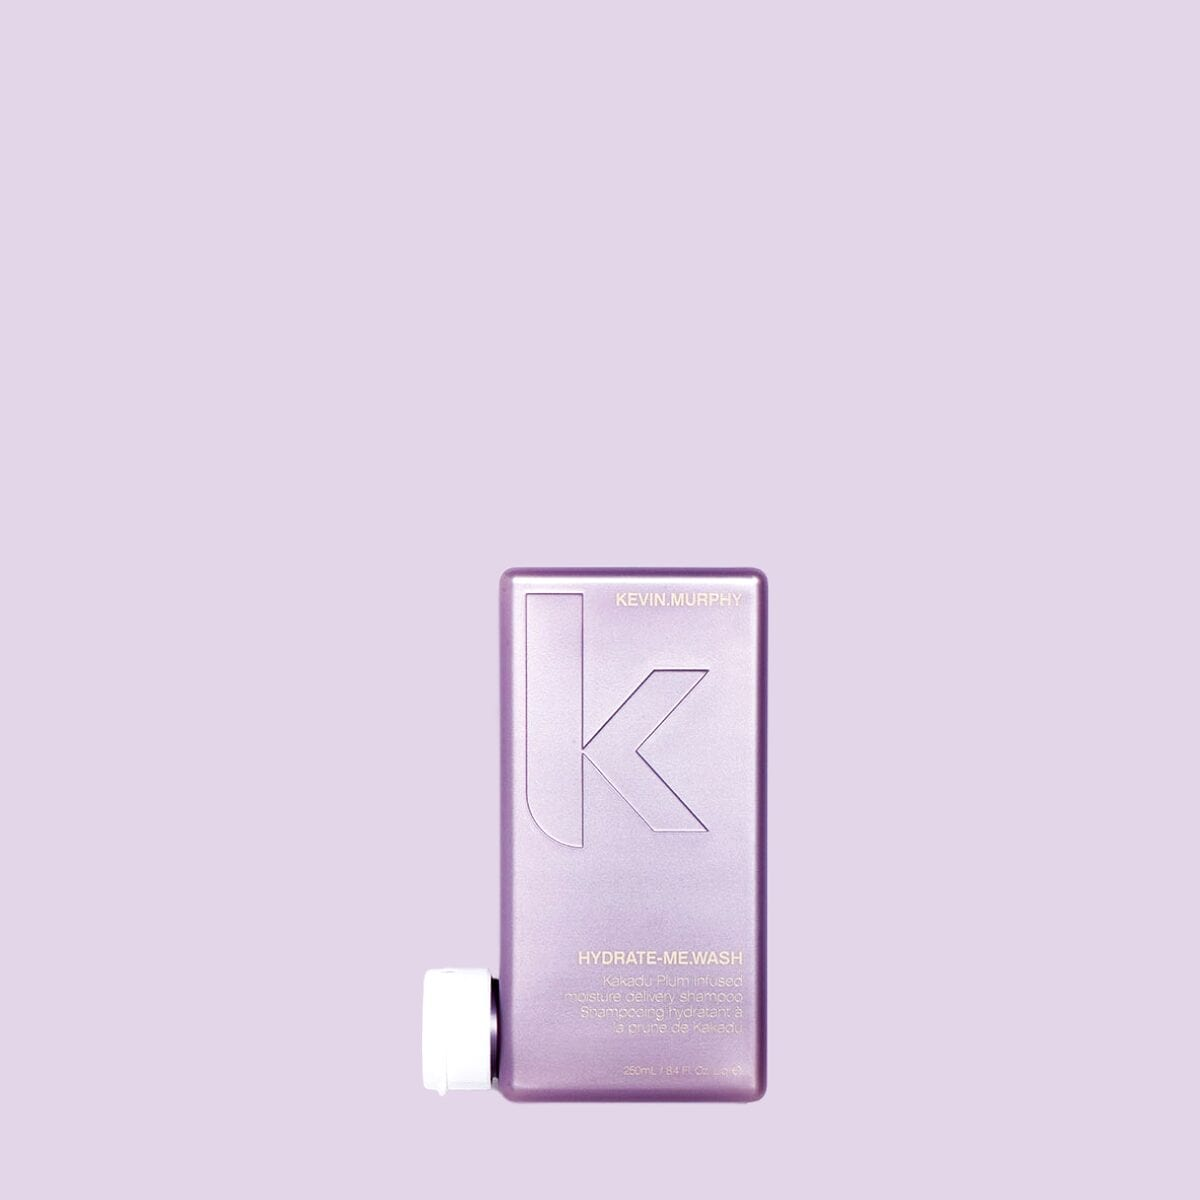 kevin murphy hydrate me wash